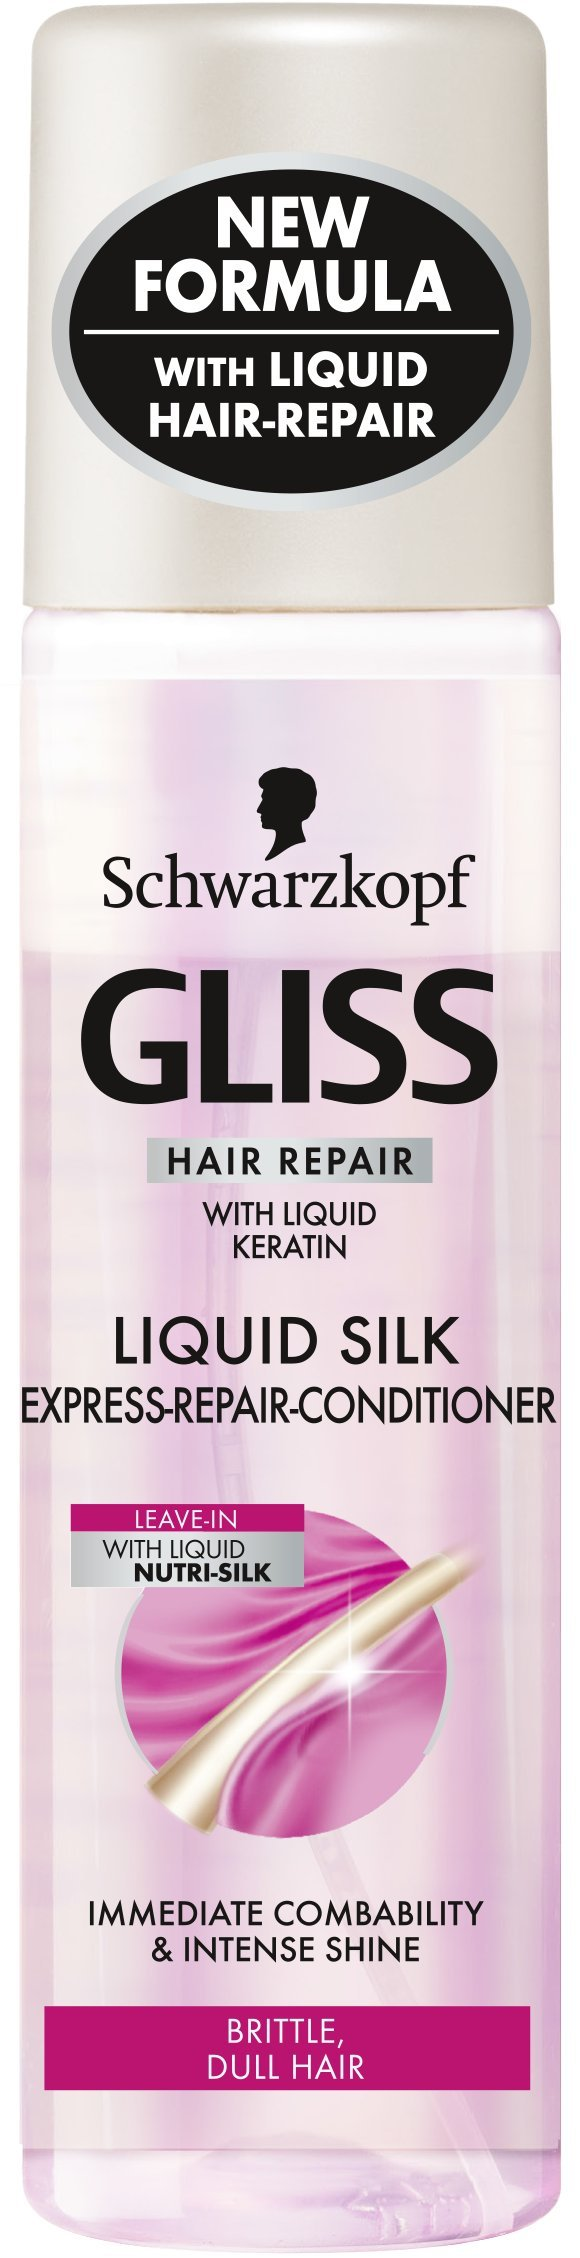 Schwarzkopf Gliss Liquid Silk Express Repair Conditioner 200ml